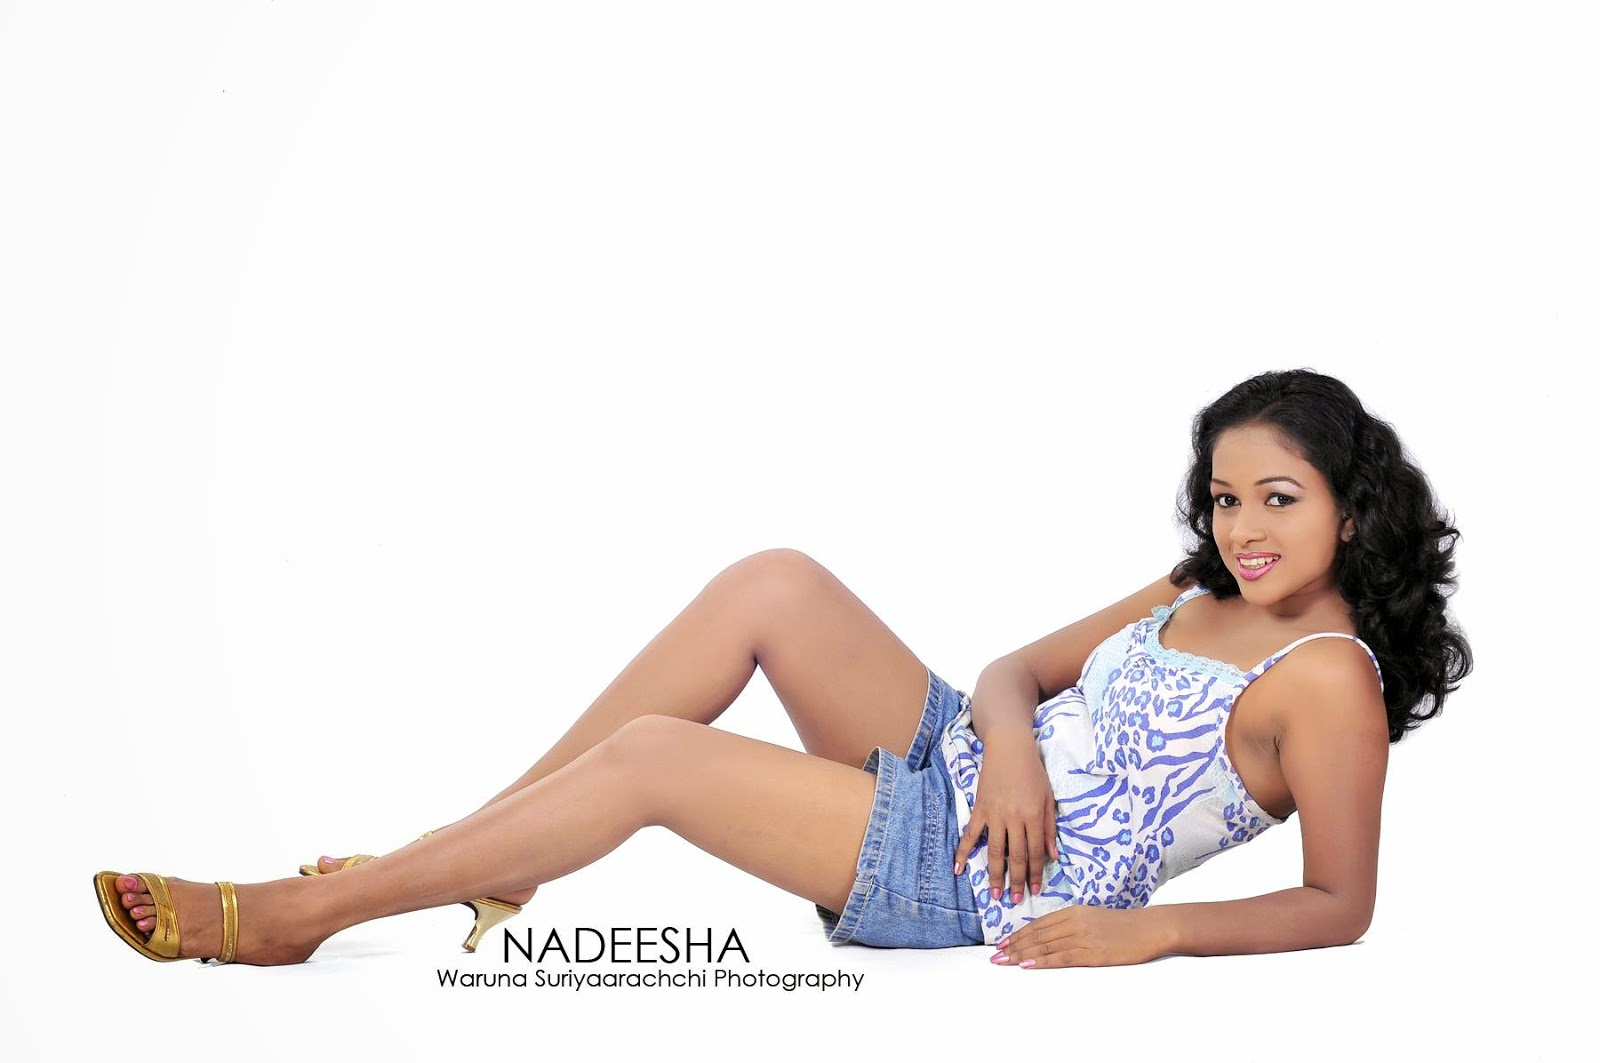 Nadeesha blue shorts